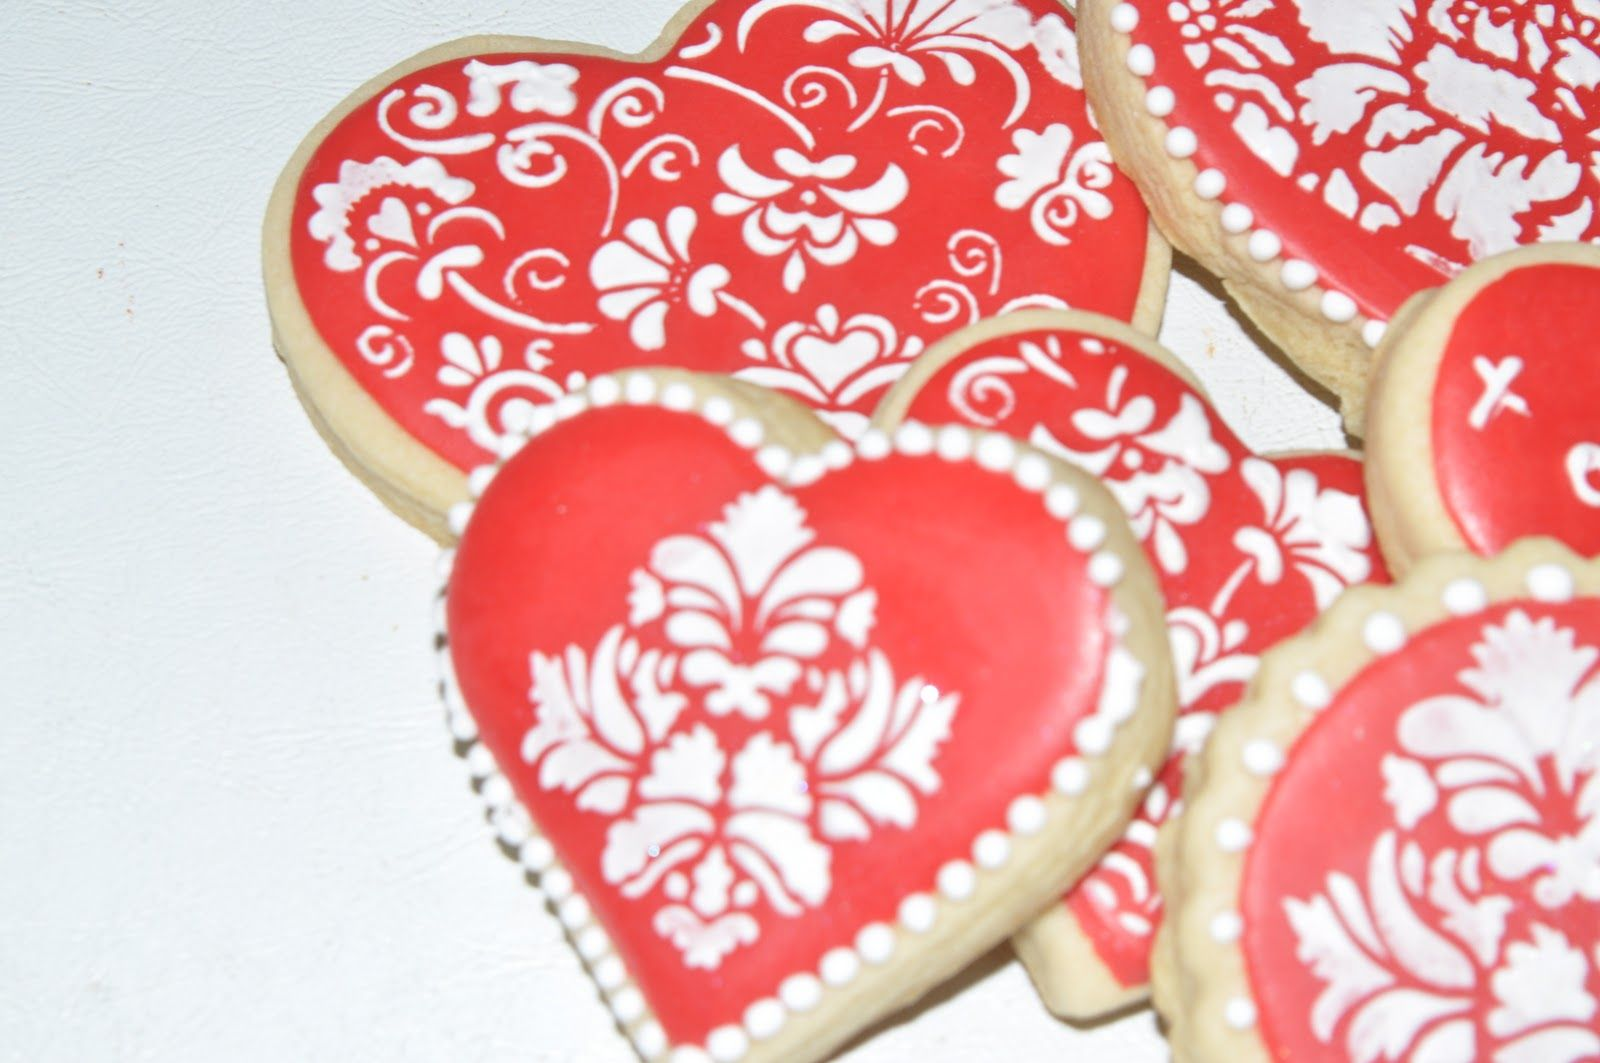 valentines day cookies - Google Search